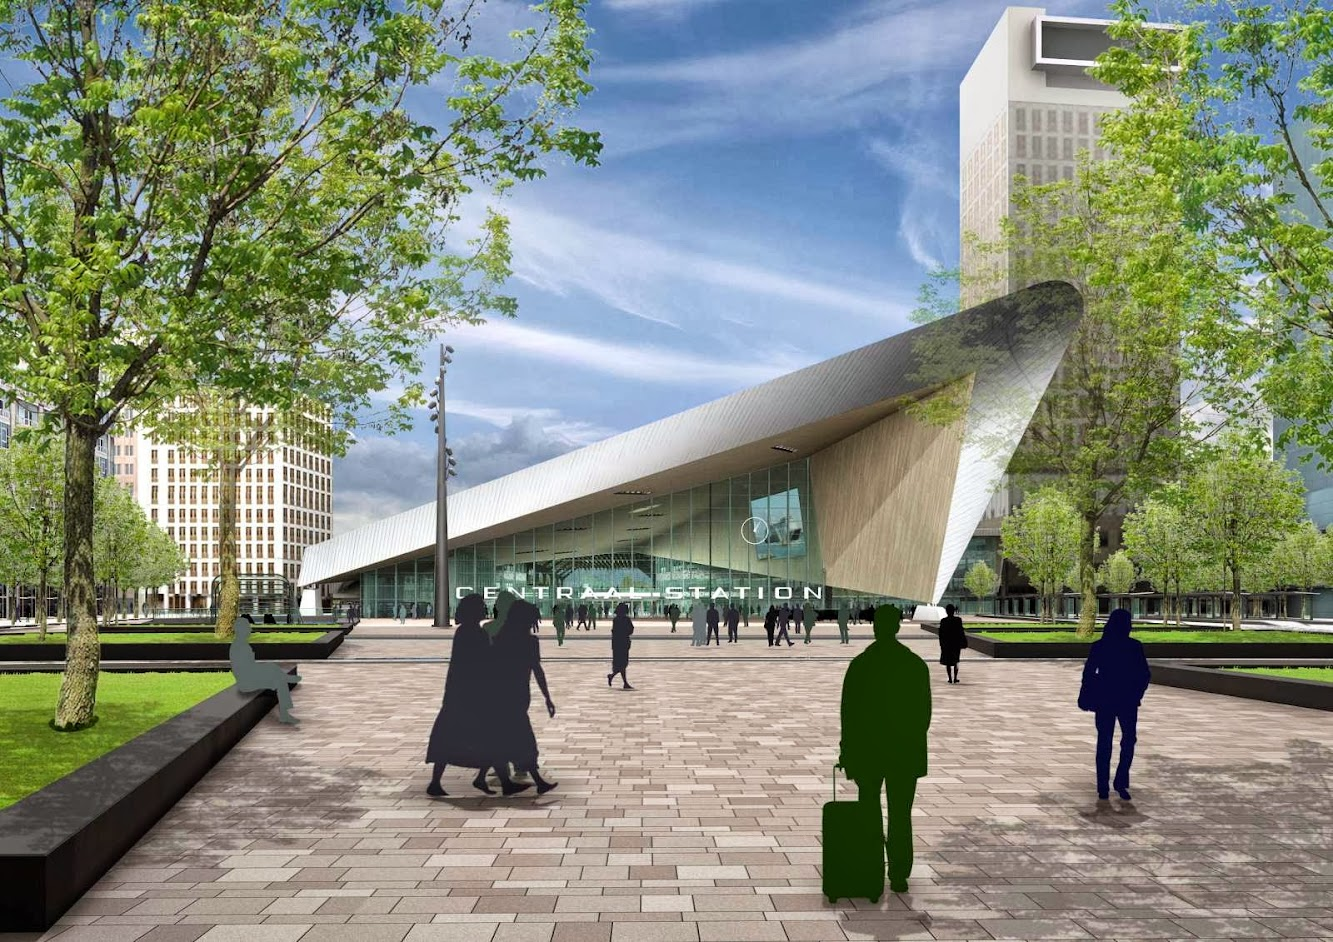 Rotterdam, Paesi Bassi: Rotterdam Central Station Opens in 2014